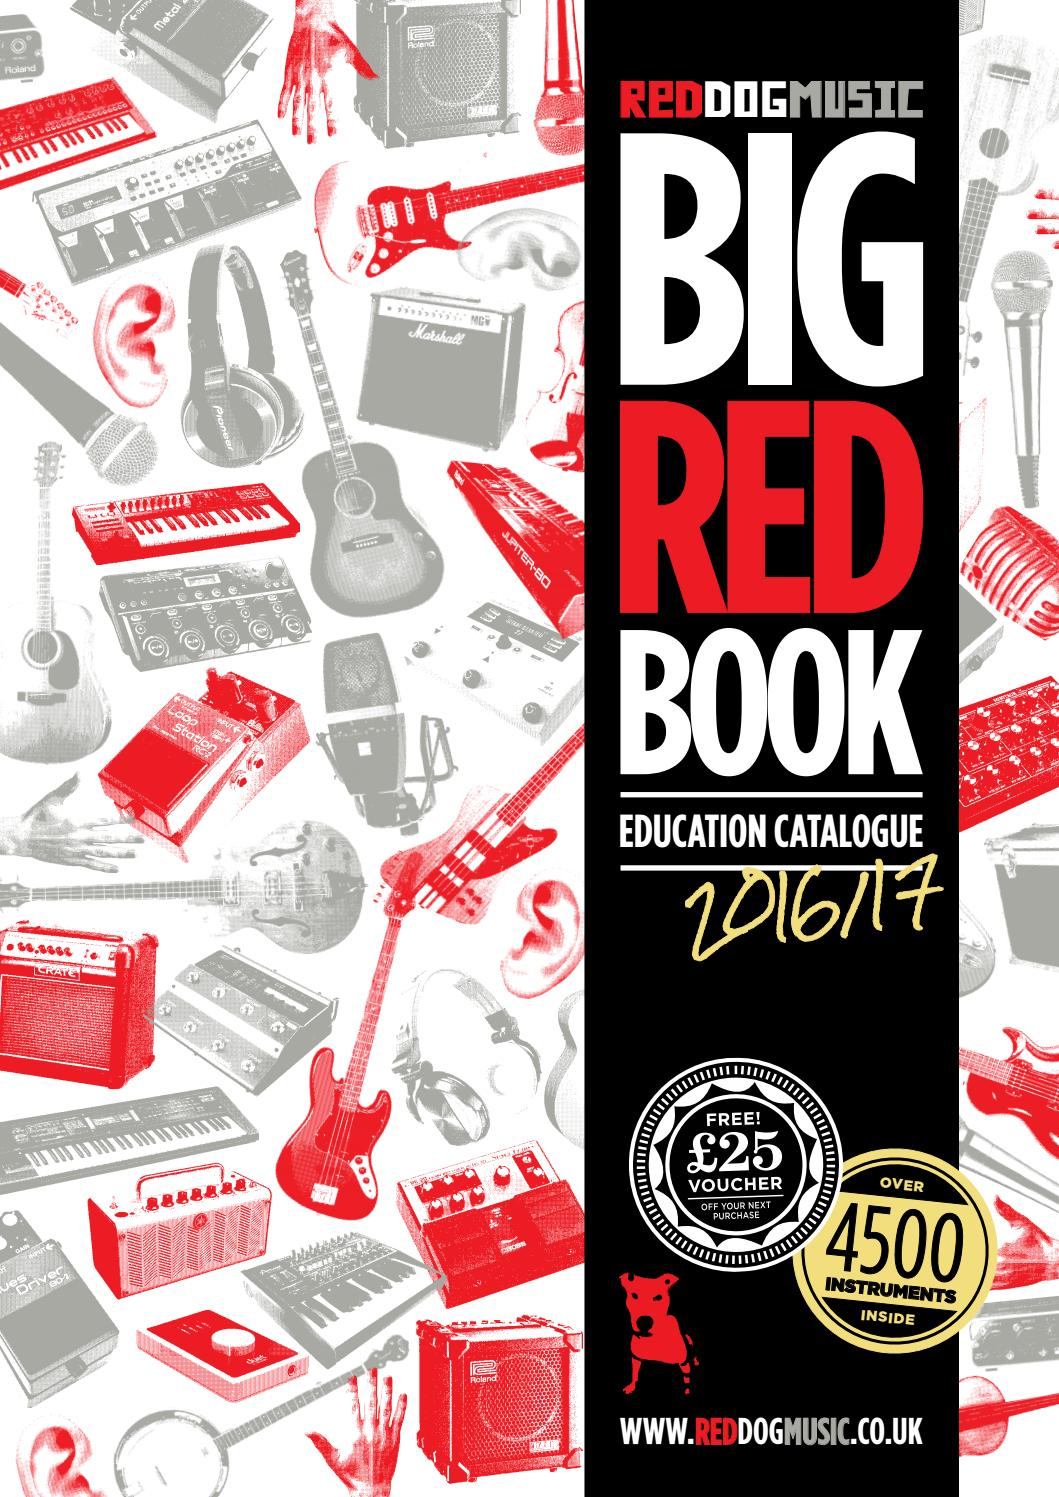 Red Dog Music Education Catalogue 2016 By Issuu 120 Seconds Voice Record 8211 Playback